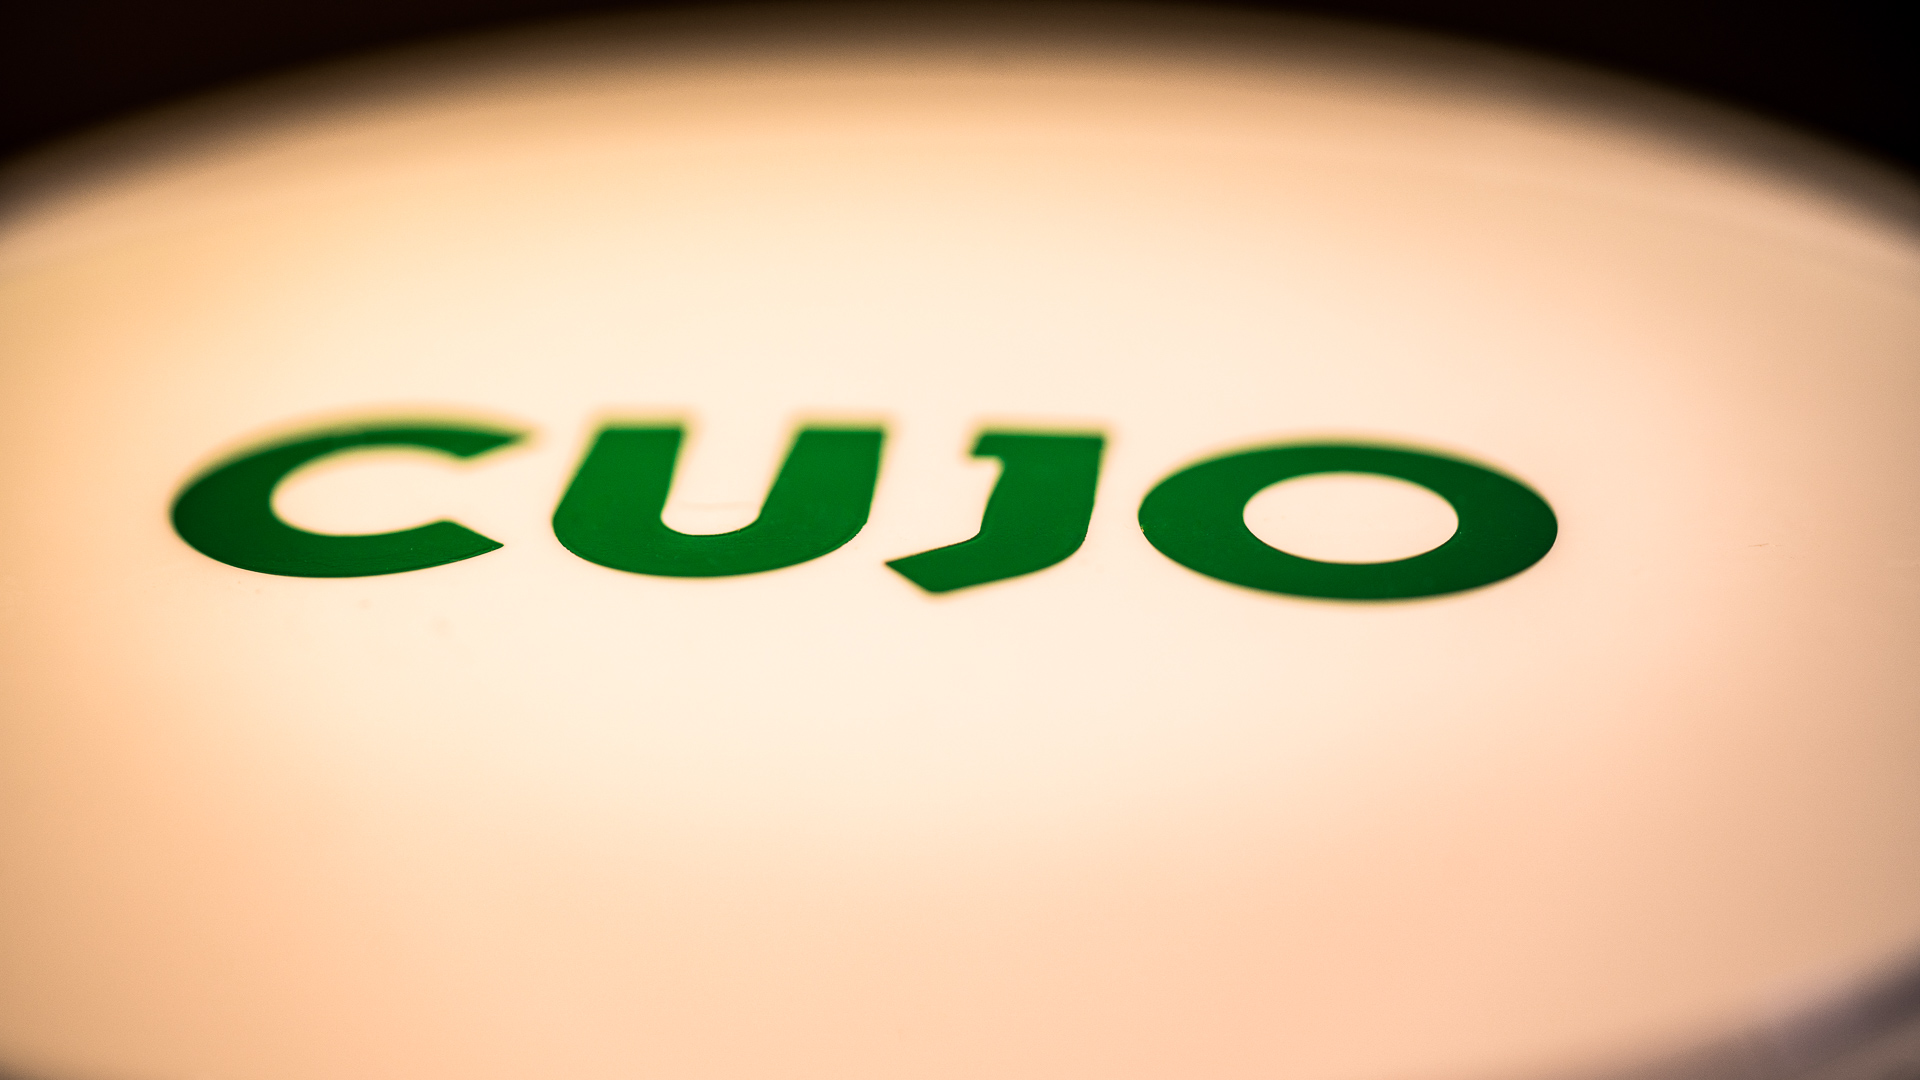 cujo, web security, smart home, home network security